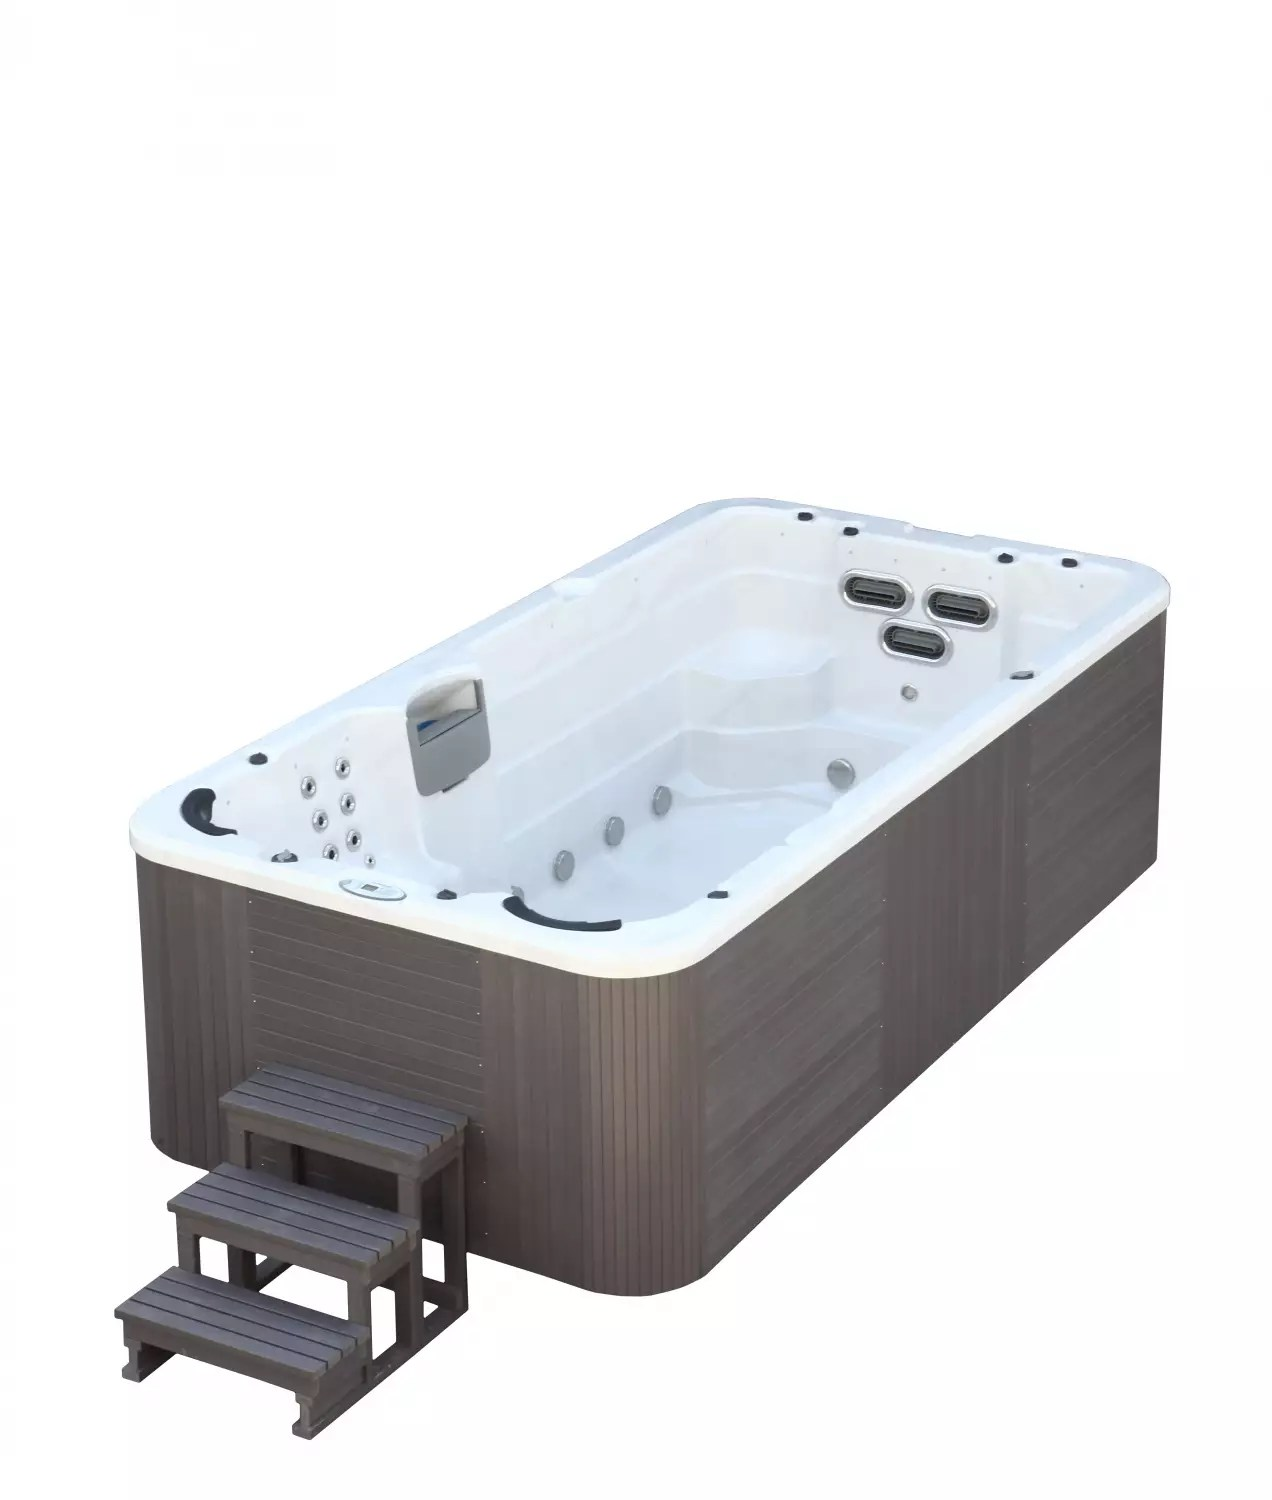 Whirlpool Outdoor Swim Spa Beta Swim Spa Für 8 Personen Kaufen Trade Line Partner